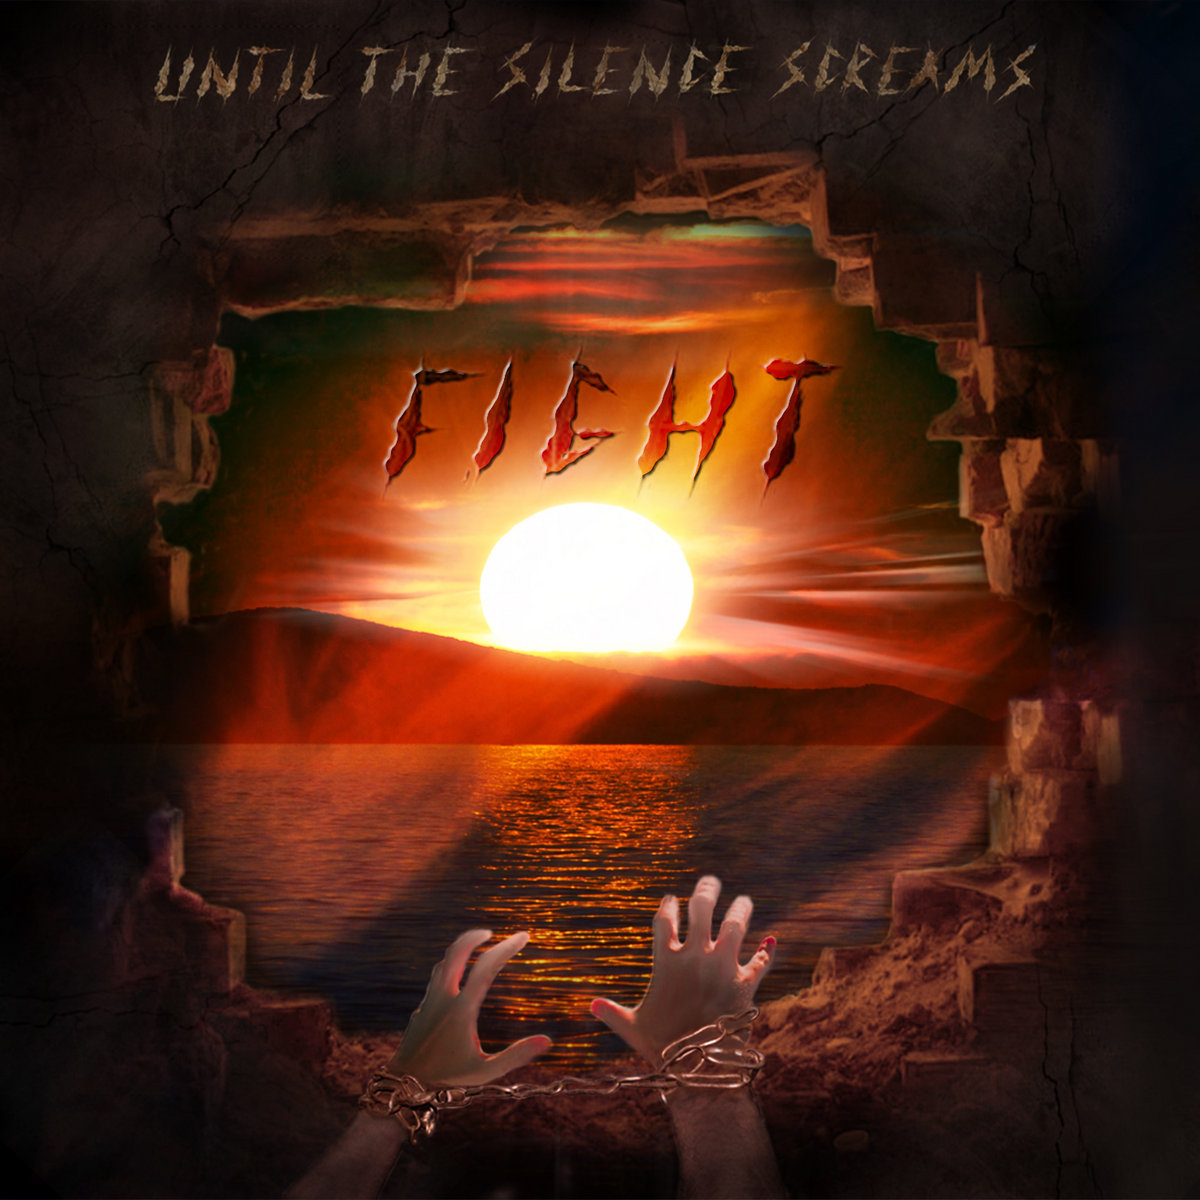 fight until the silence screams by until the silence screams